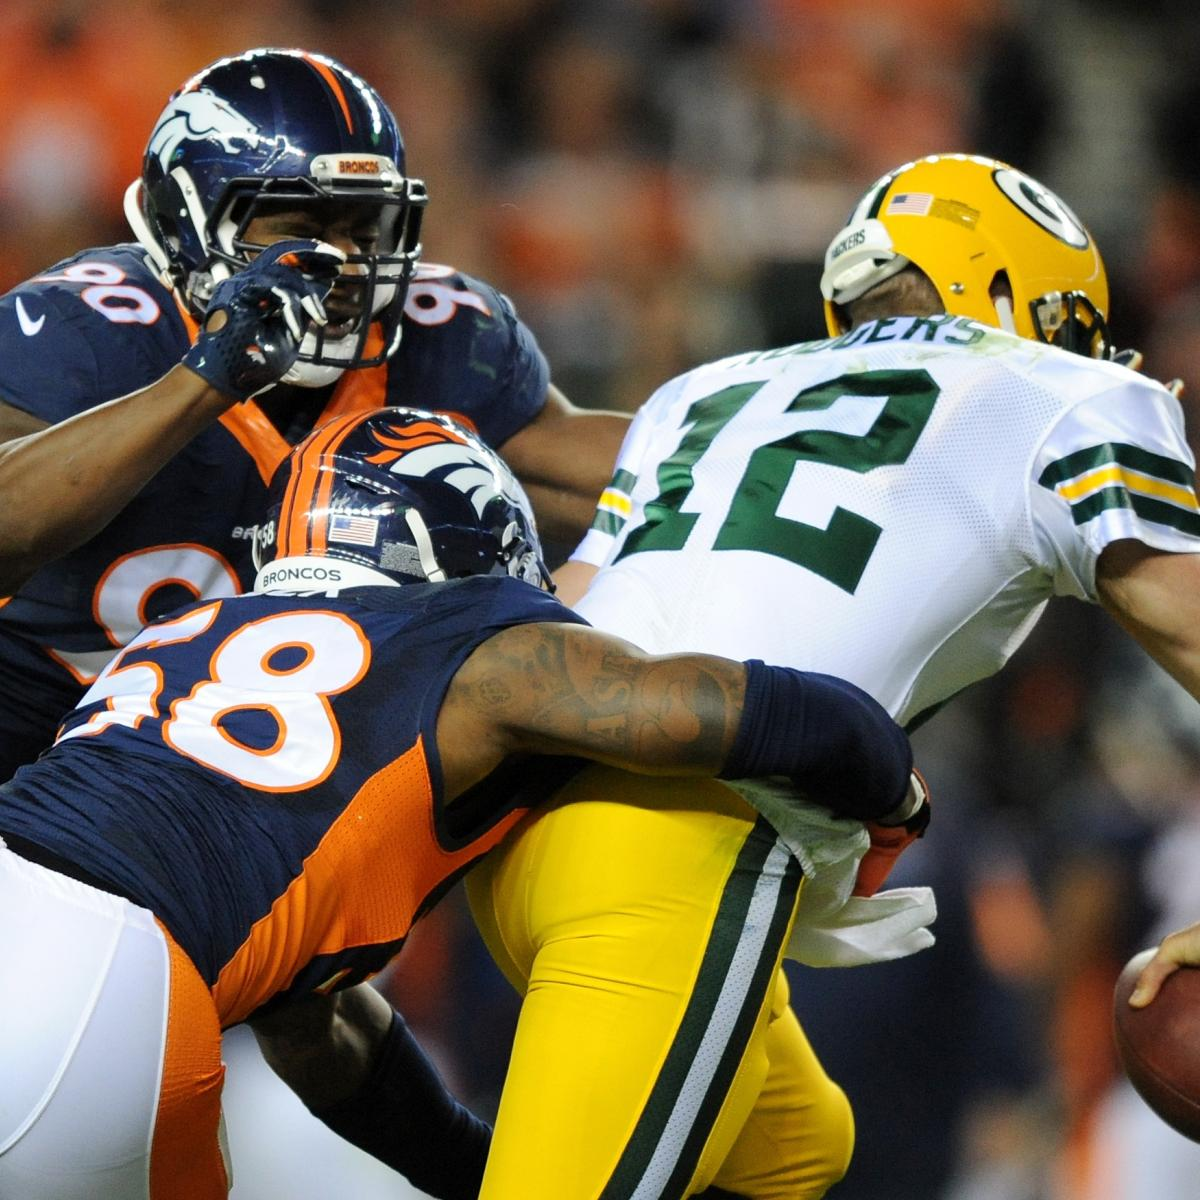 Green Bay Packers Vs. Denver Broncos: Denver Grades, Notes